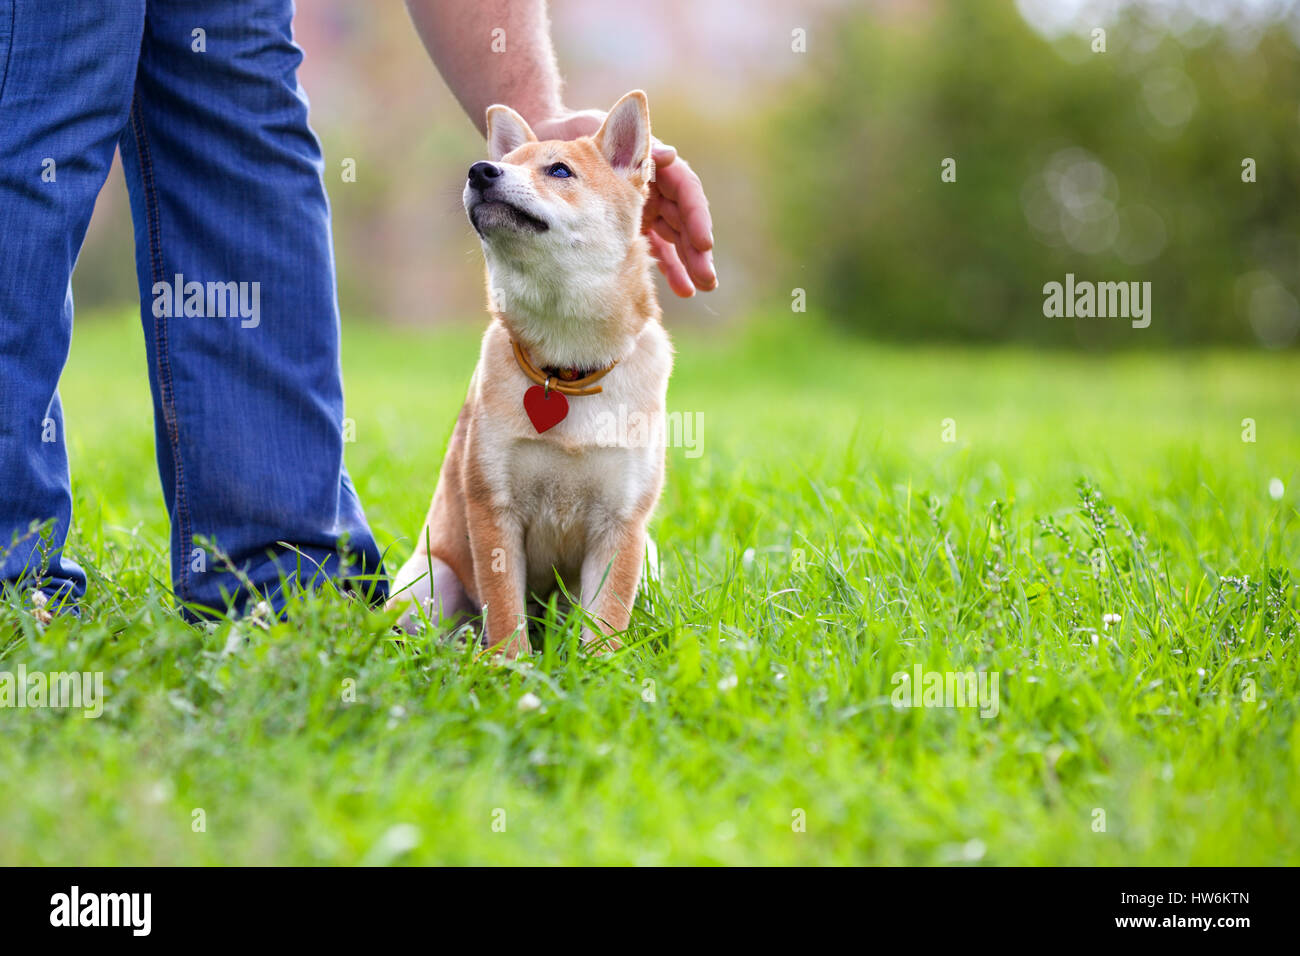 Shiba Inu in the park. - Stock Image